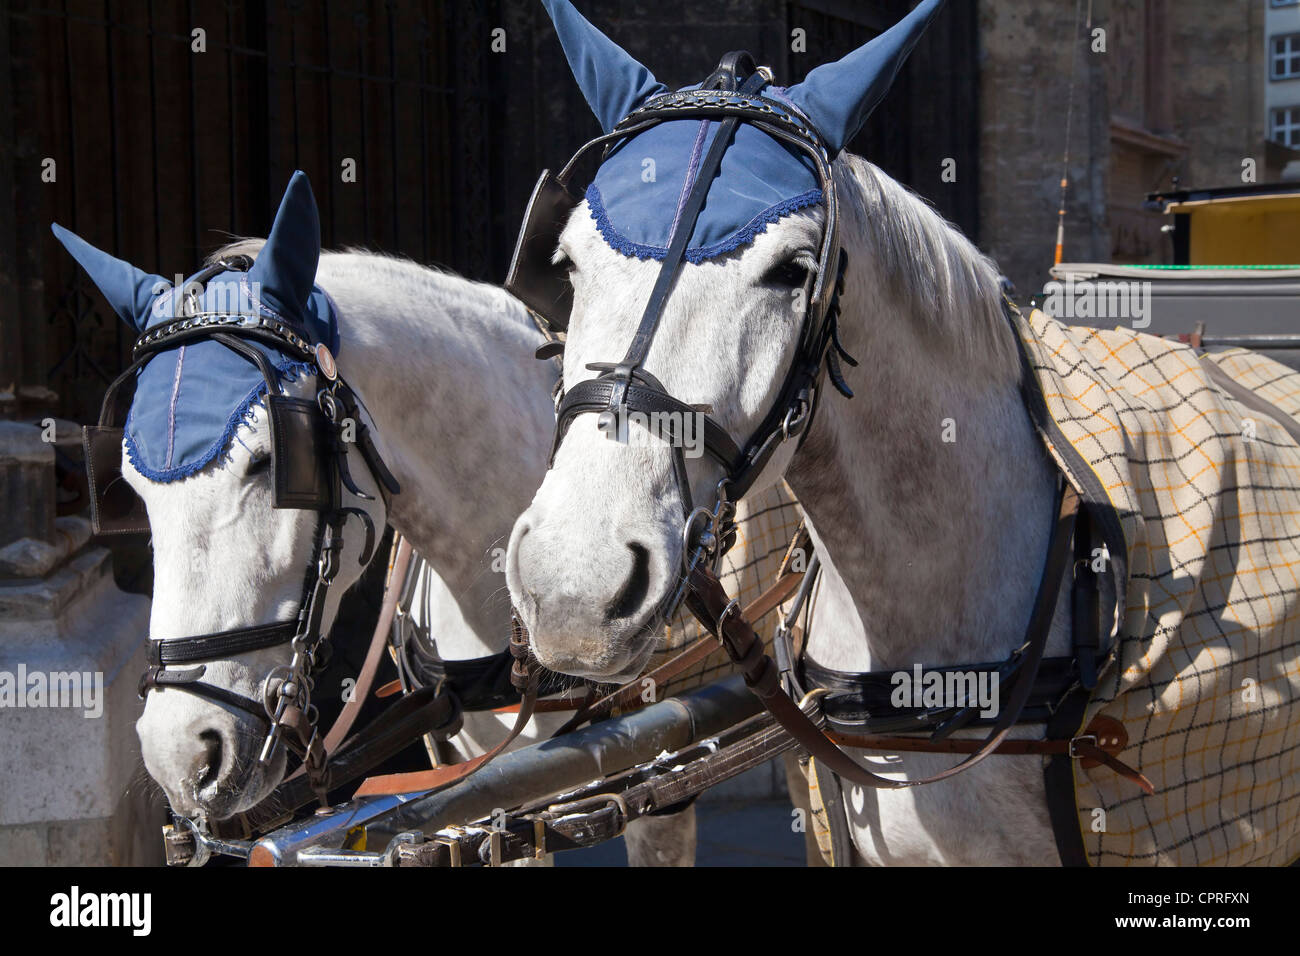 Fiaker Carriage Horses with blue Ear Covers, Vienna, Austria - Stock Image